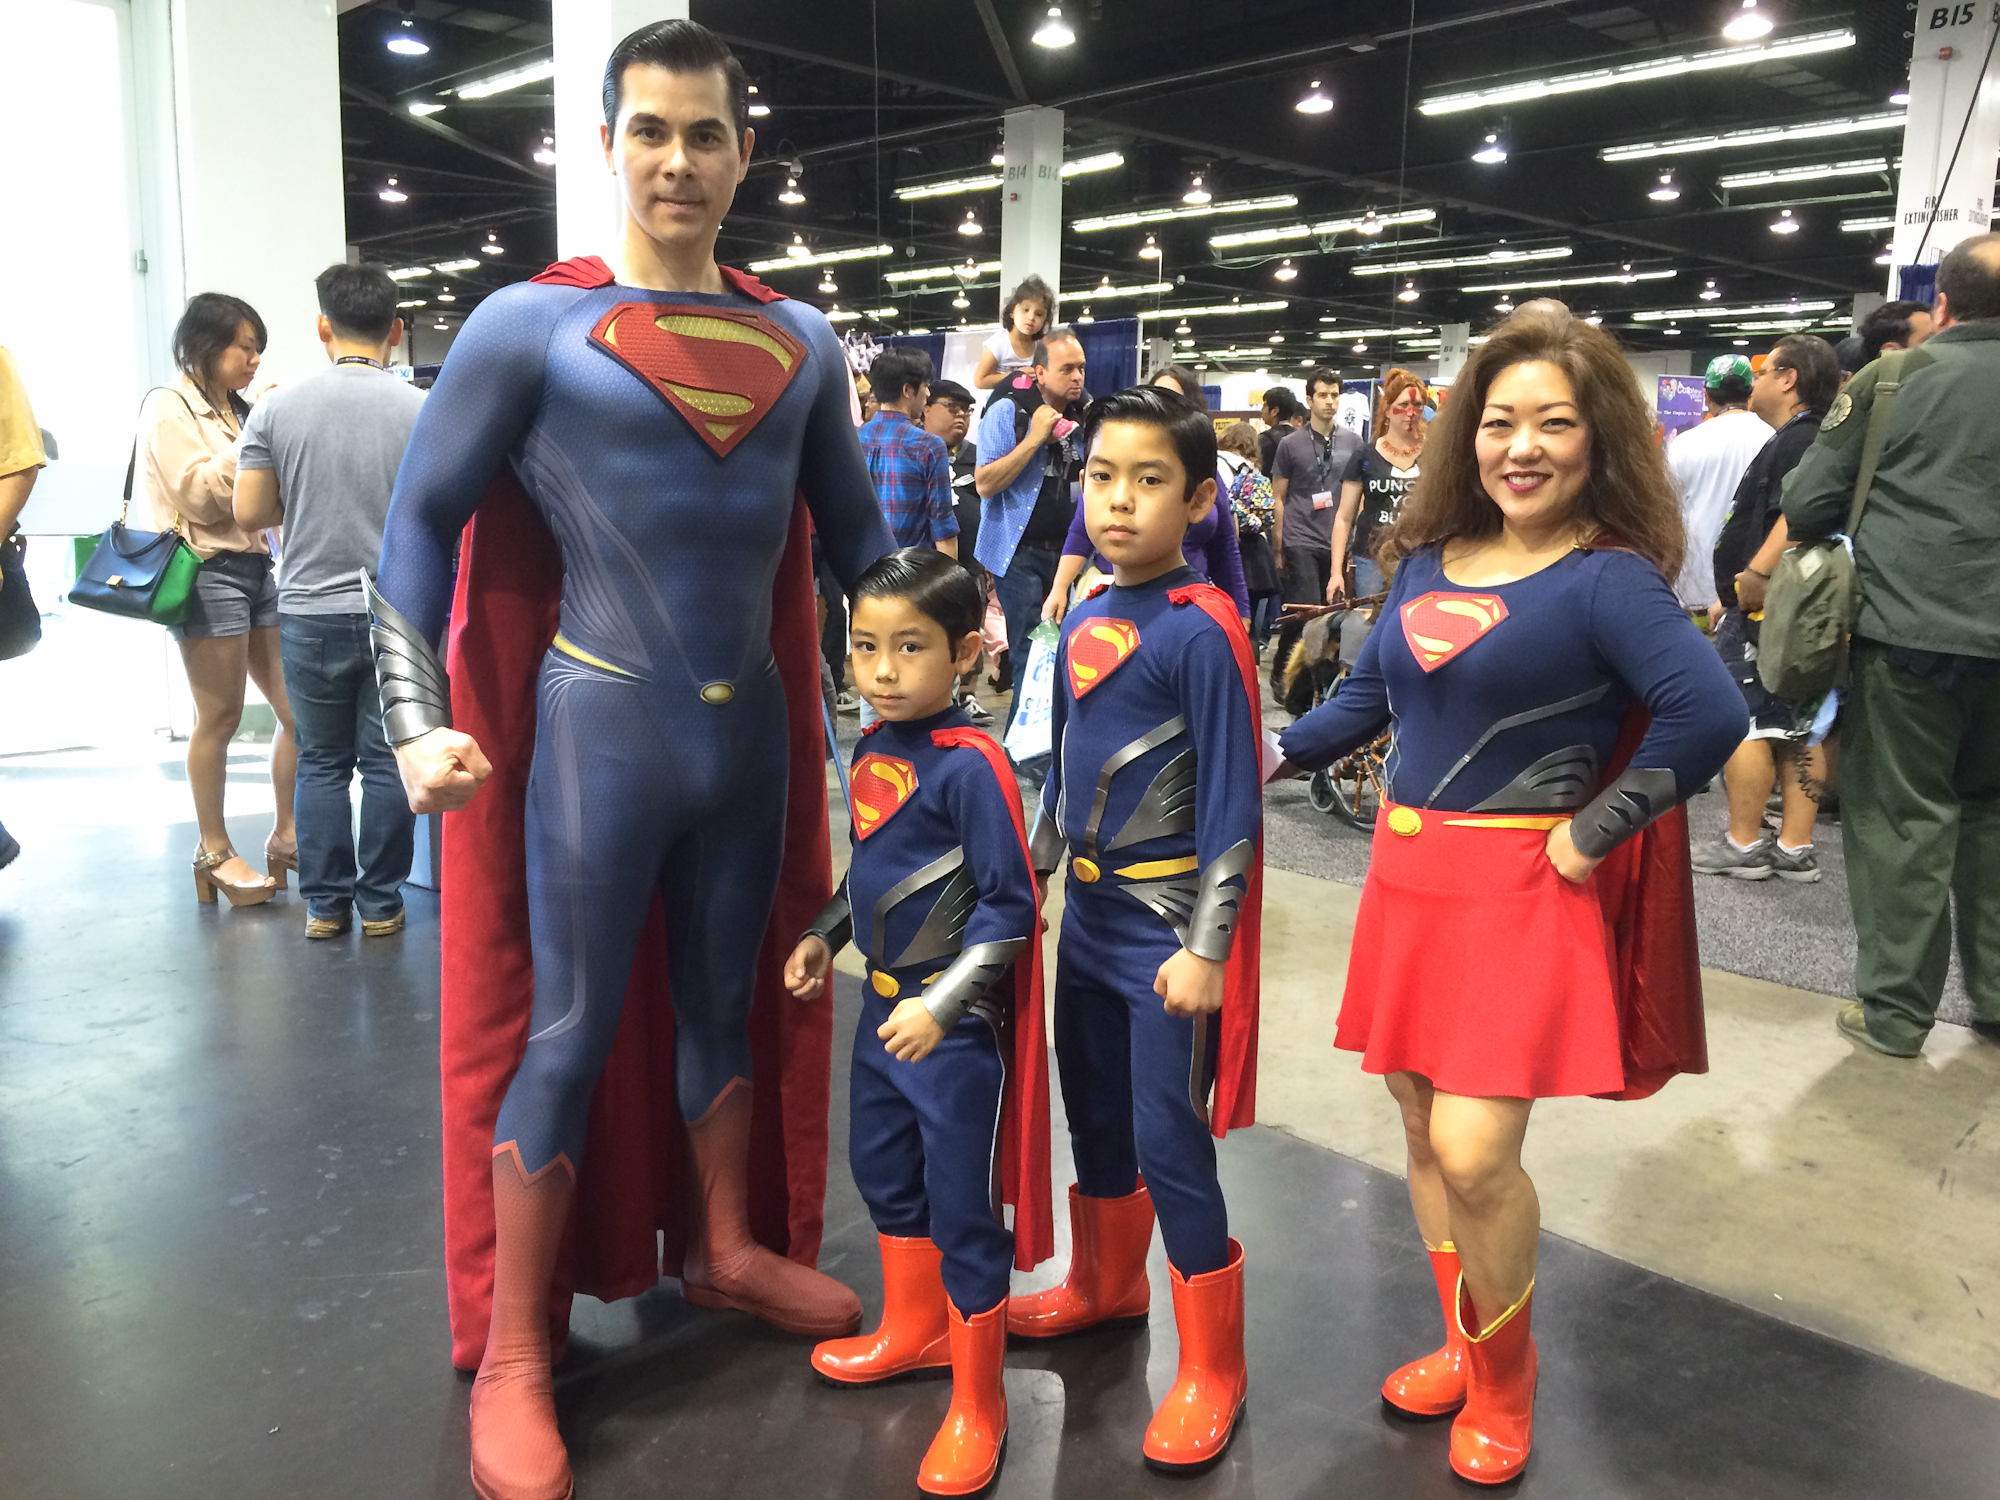 Family cosplay is our favorite cosplay